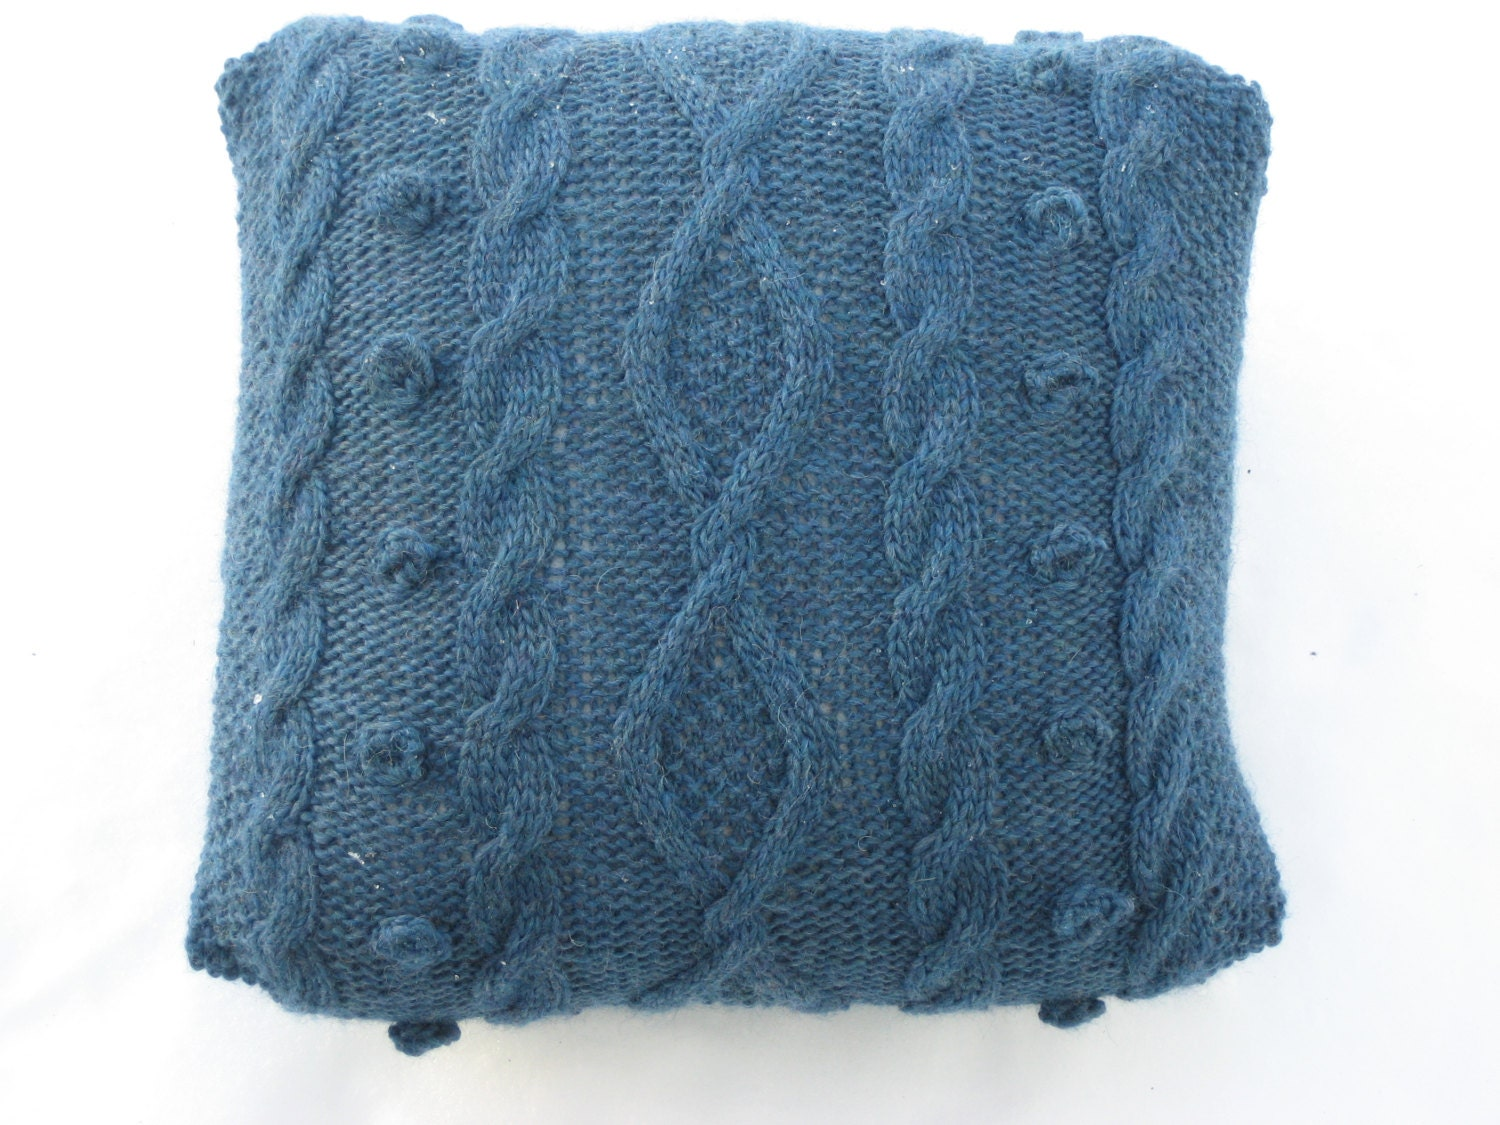 Decorative Denim Pillows : denim blue pillow cable knitted throw pillow eco-friendly